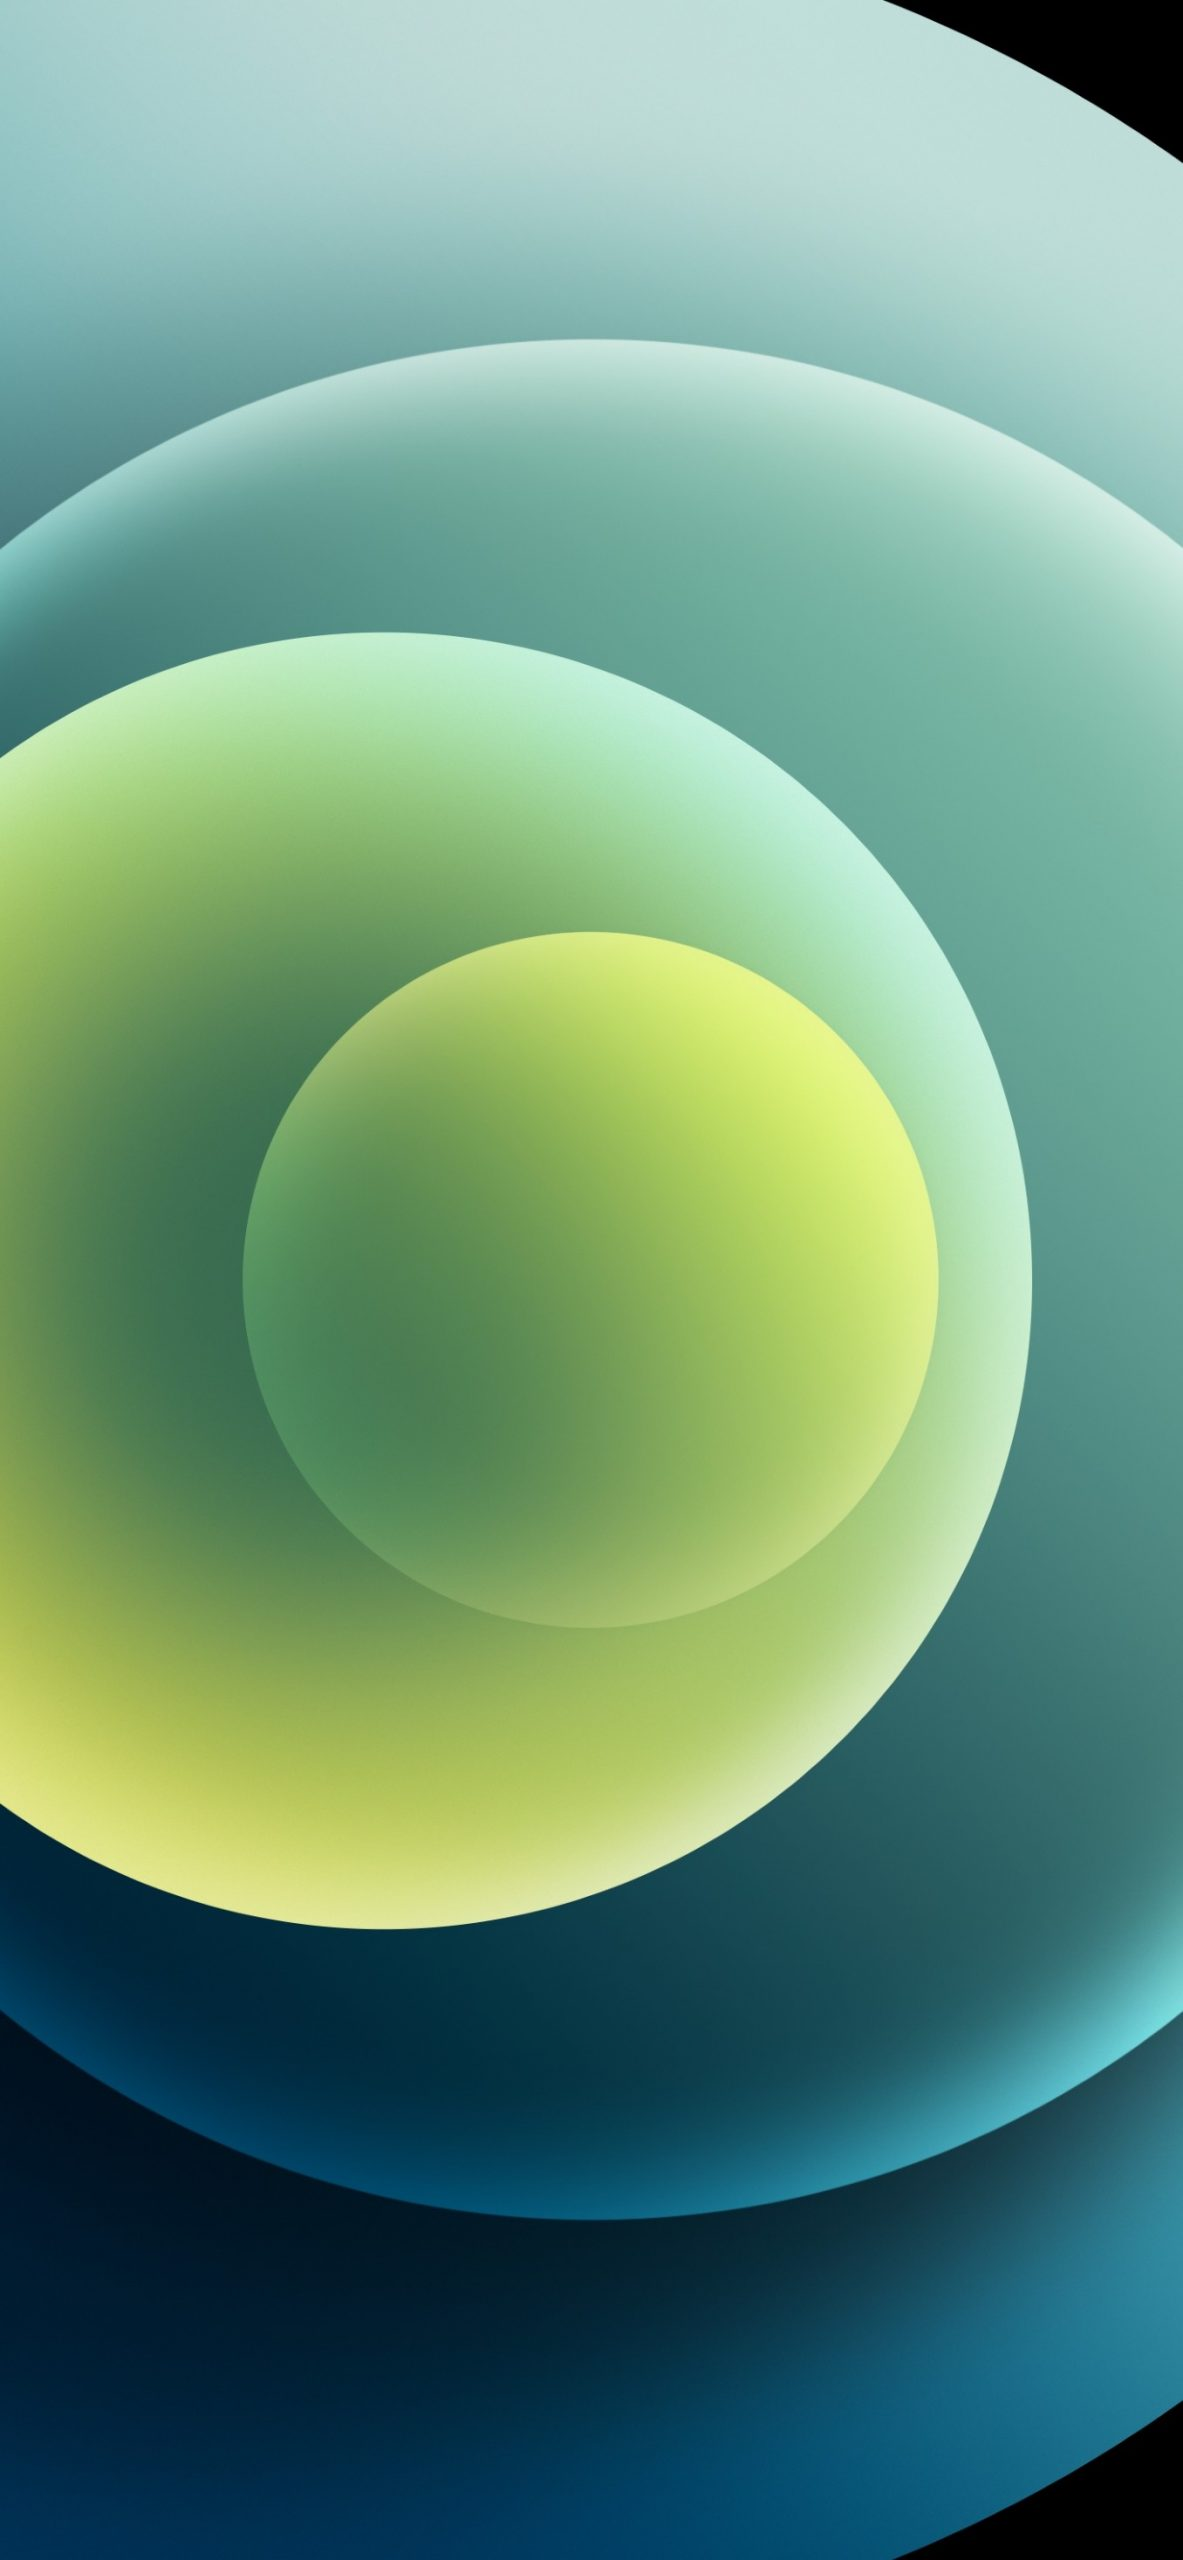 iphone 12 orb green light scaled